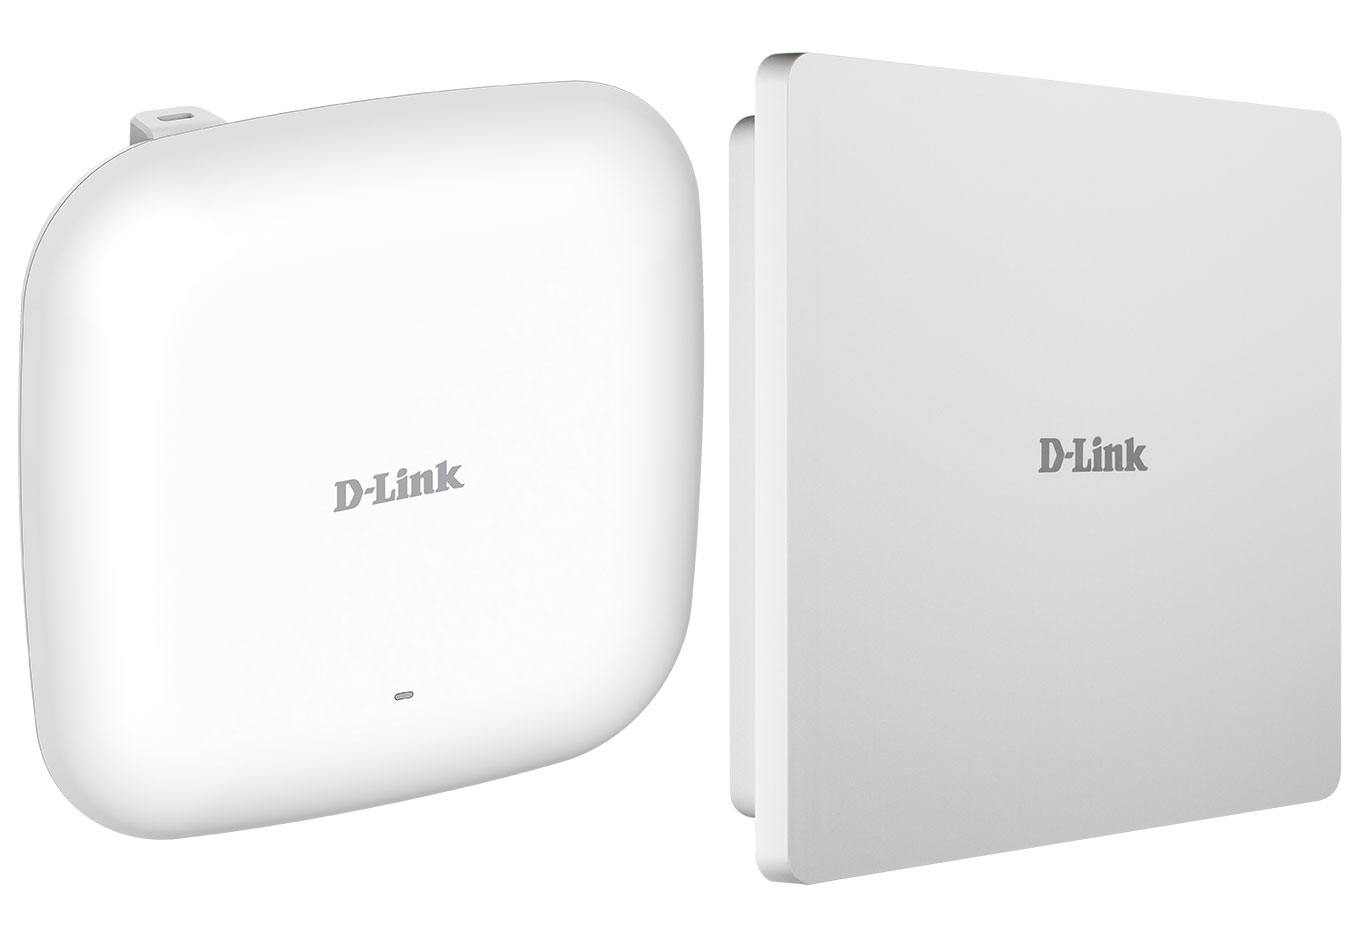 DAP-2662 Wireless AC1200 Wave 2 Dual-Band PoE Access Point and DAP-3666 Wireless AC1200 Wave 2 Dual-Band Outdoor PoE Access Point